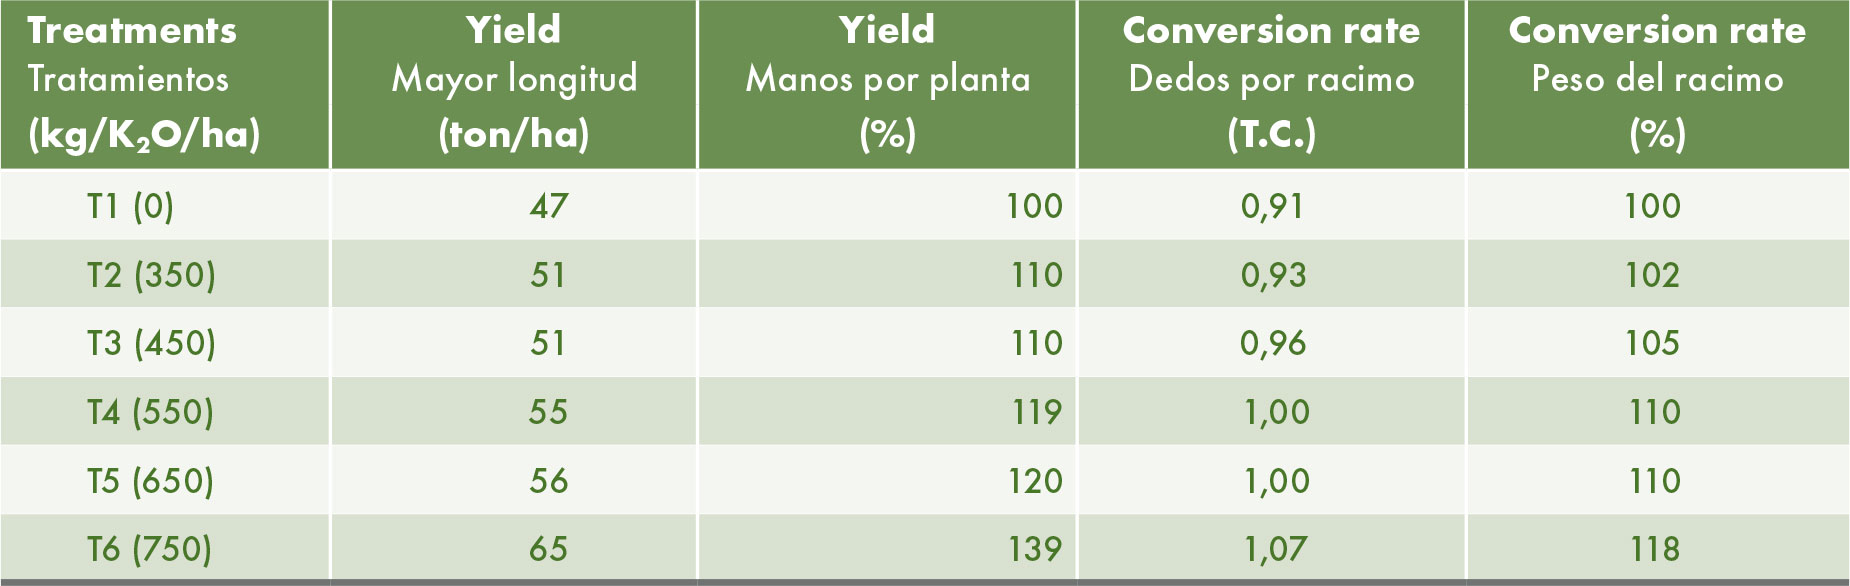 Yield per hectare and conversion rates to boxes. The percentage increase is calculated relative to the control without addition of potassium (T1).